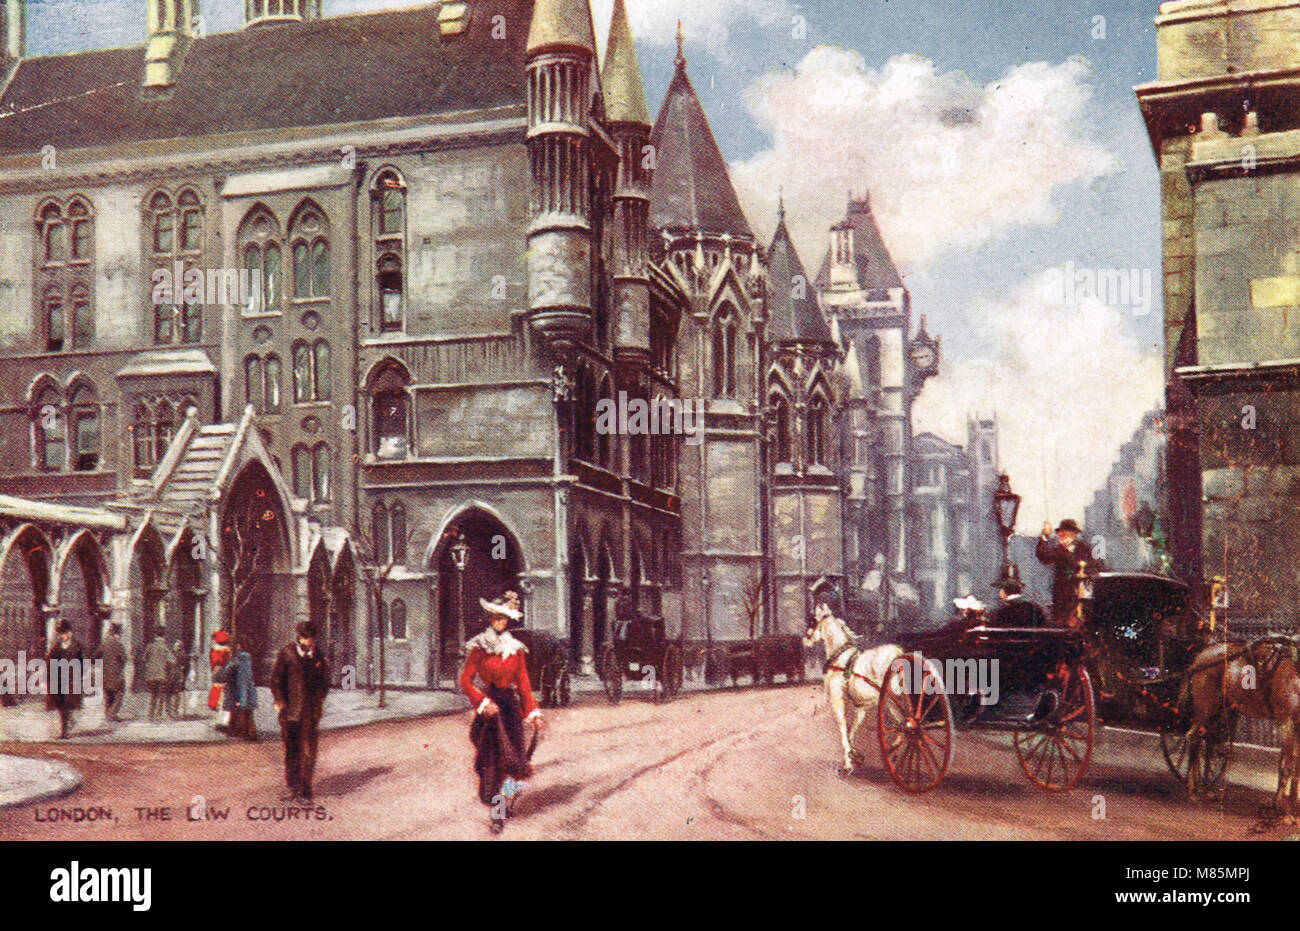 Royal Courts of Justice, London, England, circa 1905 Stock Photo